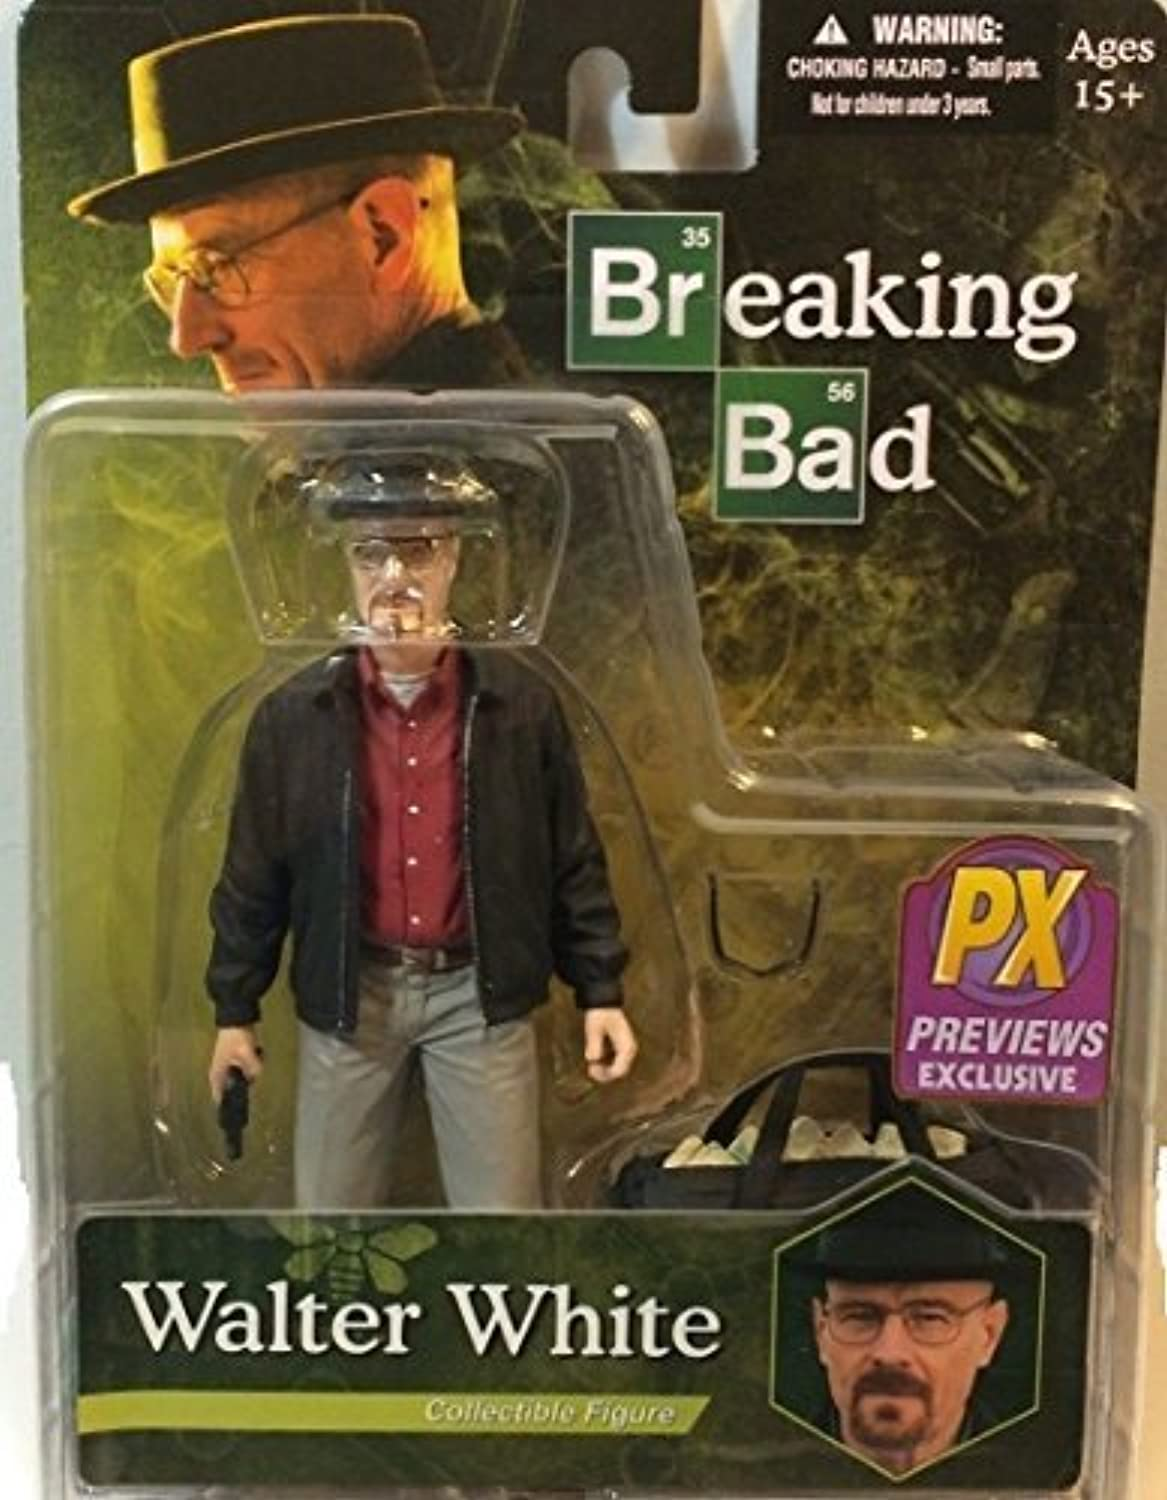 PX Previews Exclusive Breaking Bad Walter White Collectible Figure in Grey Khakis Including Bag of bluee Stuff by Breaking Bad